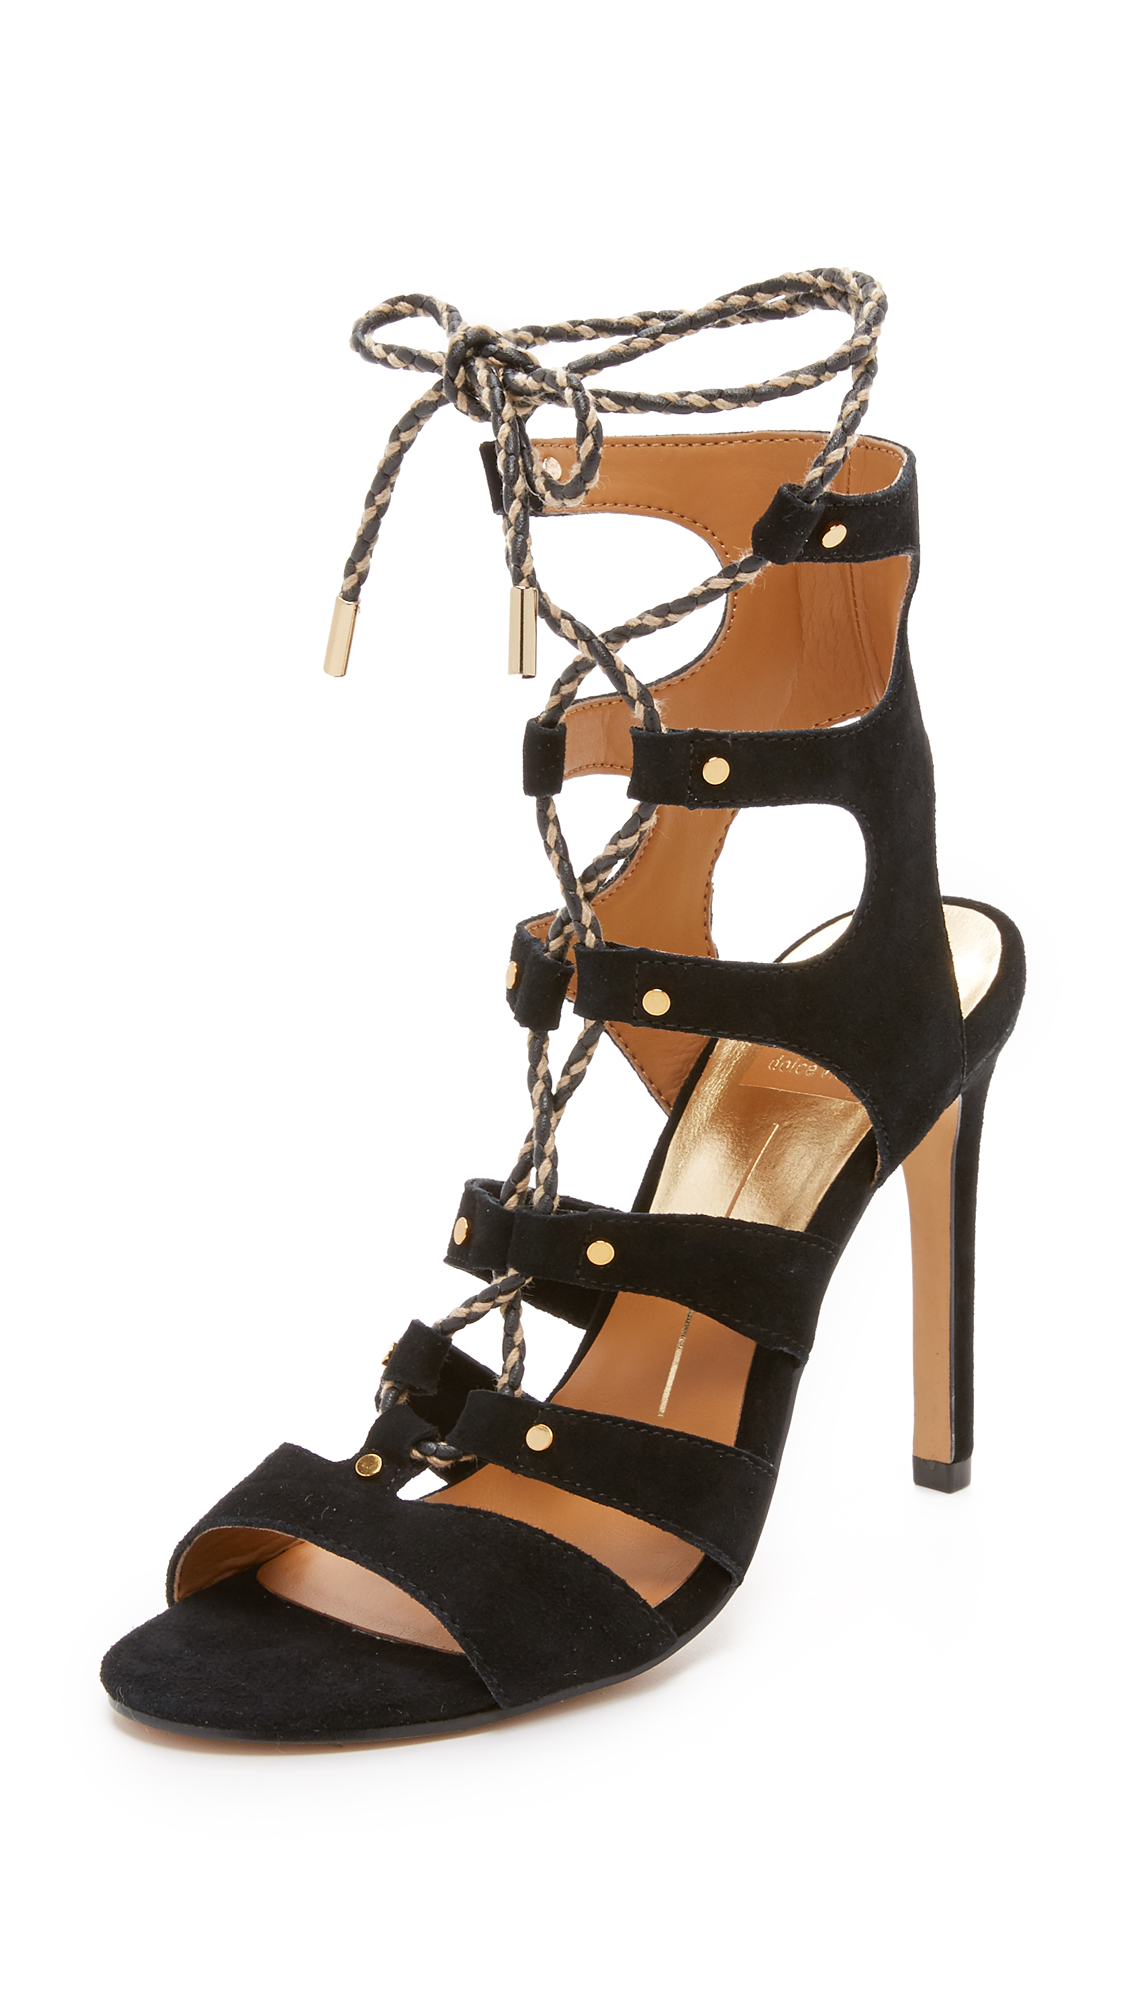 Dolce Vita Howie Lace Up Sandals - Black at Shopbop